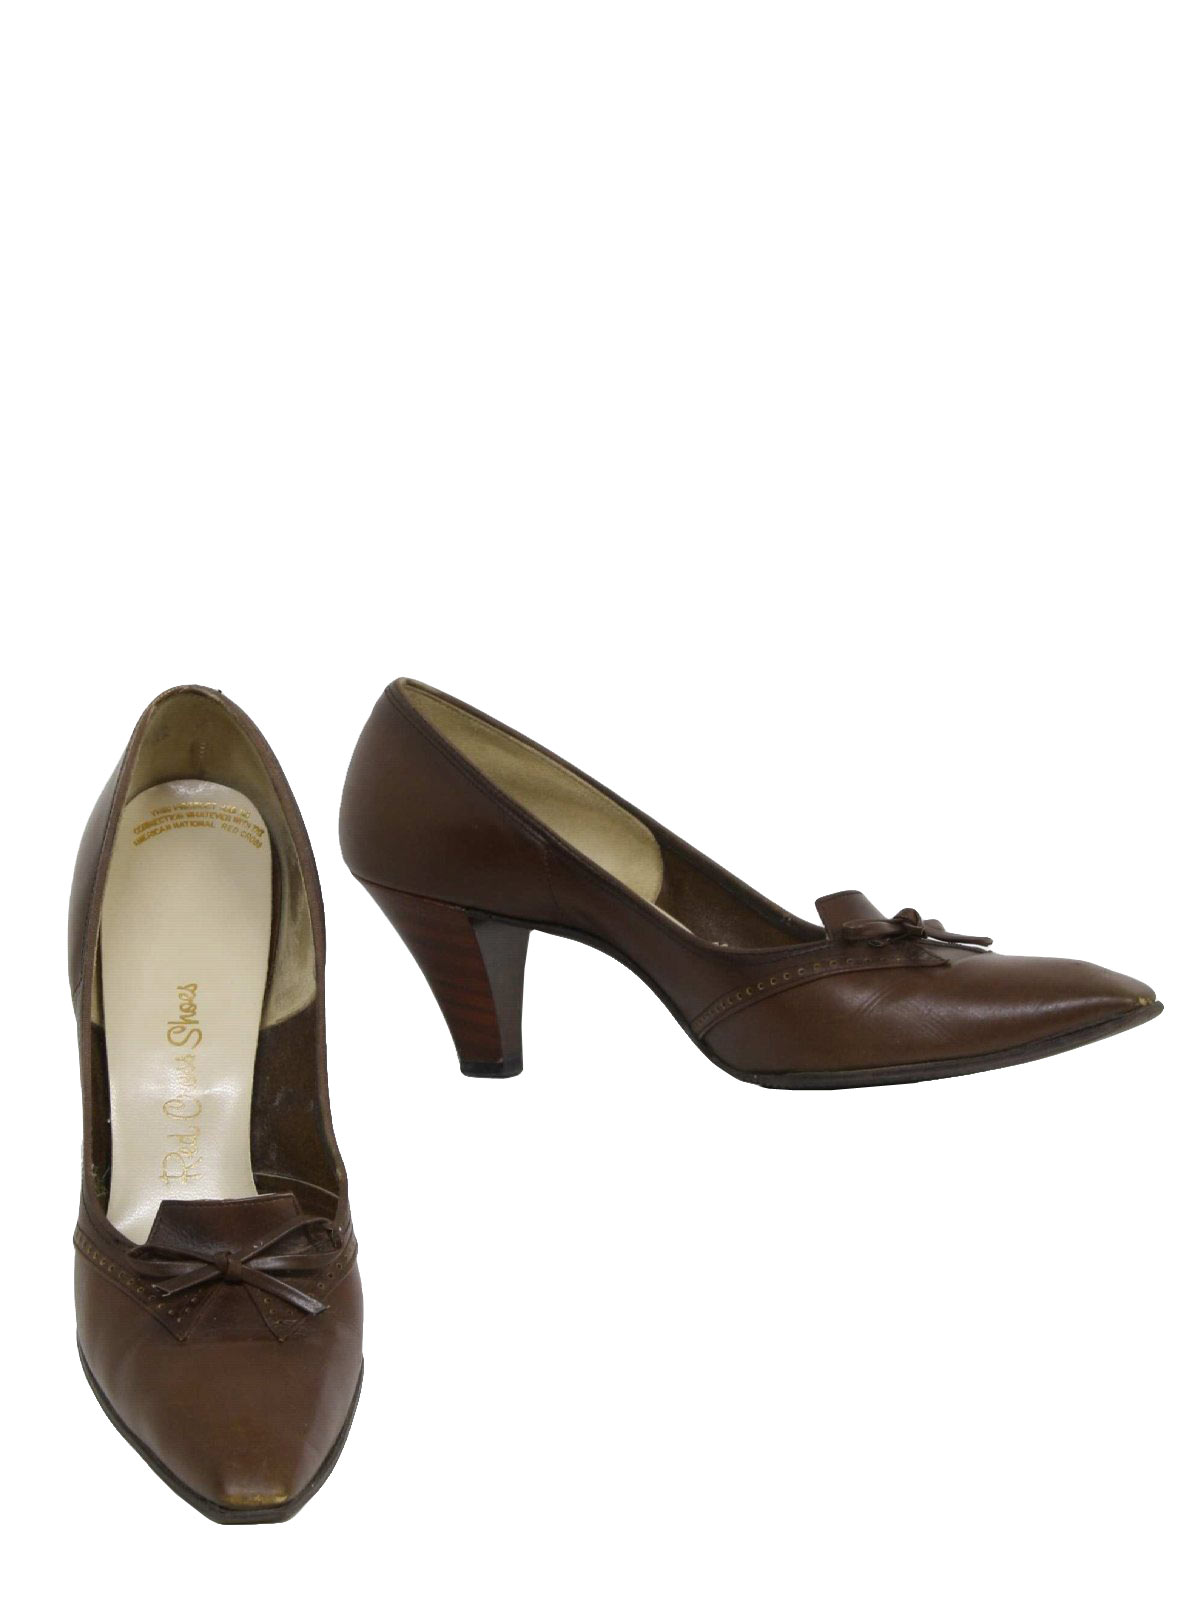 Brief History of Shoes: Vintage 1950s